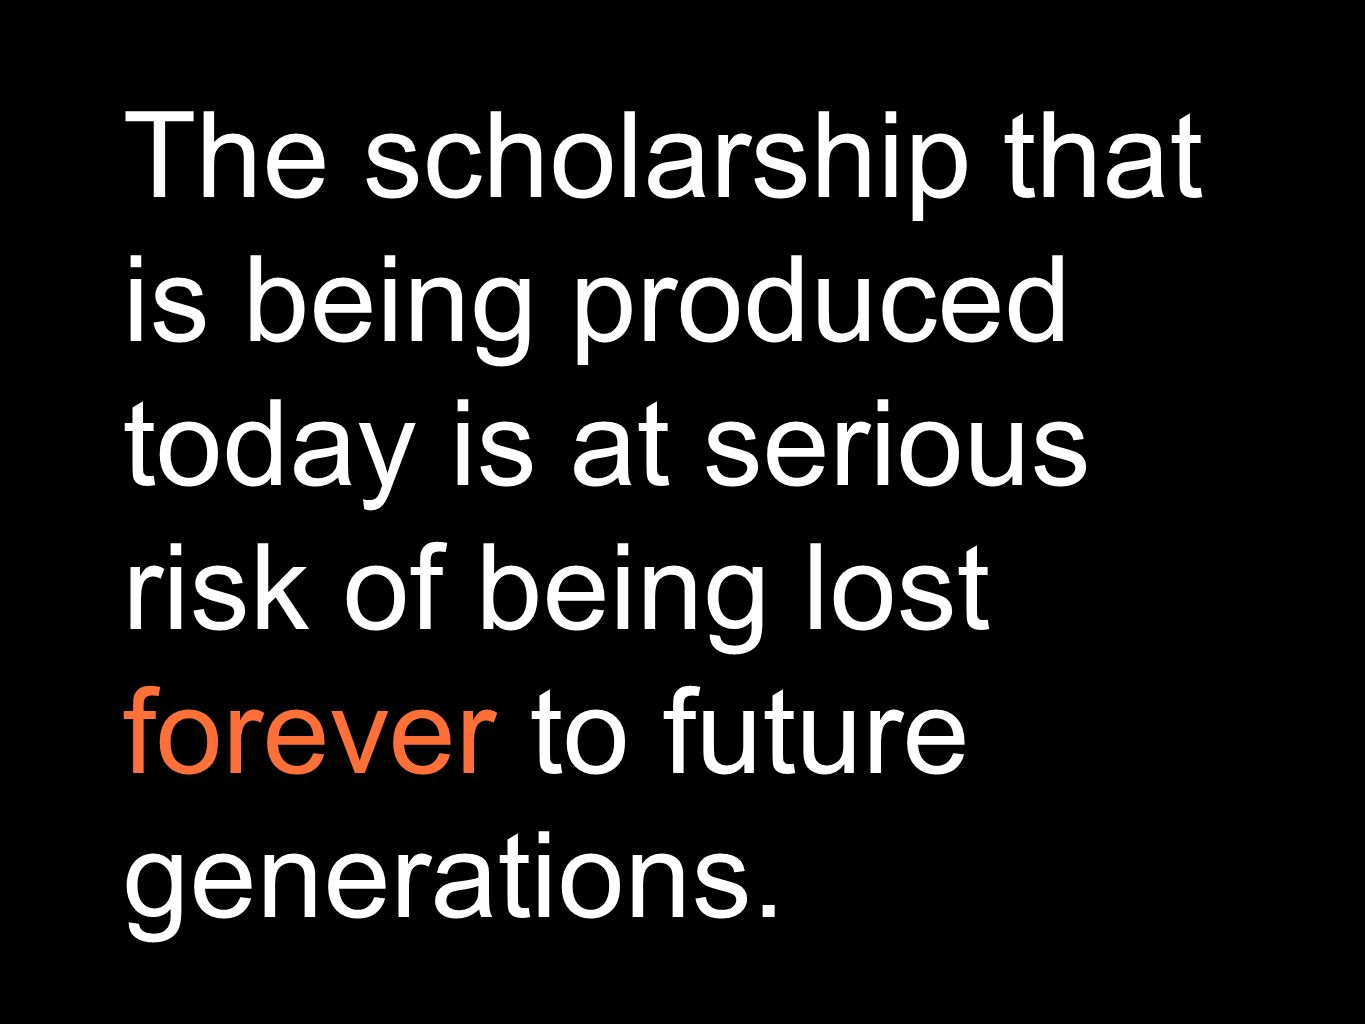 The scholarship that is being produced today is at serious risk of being lost forever to future generations.